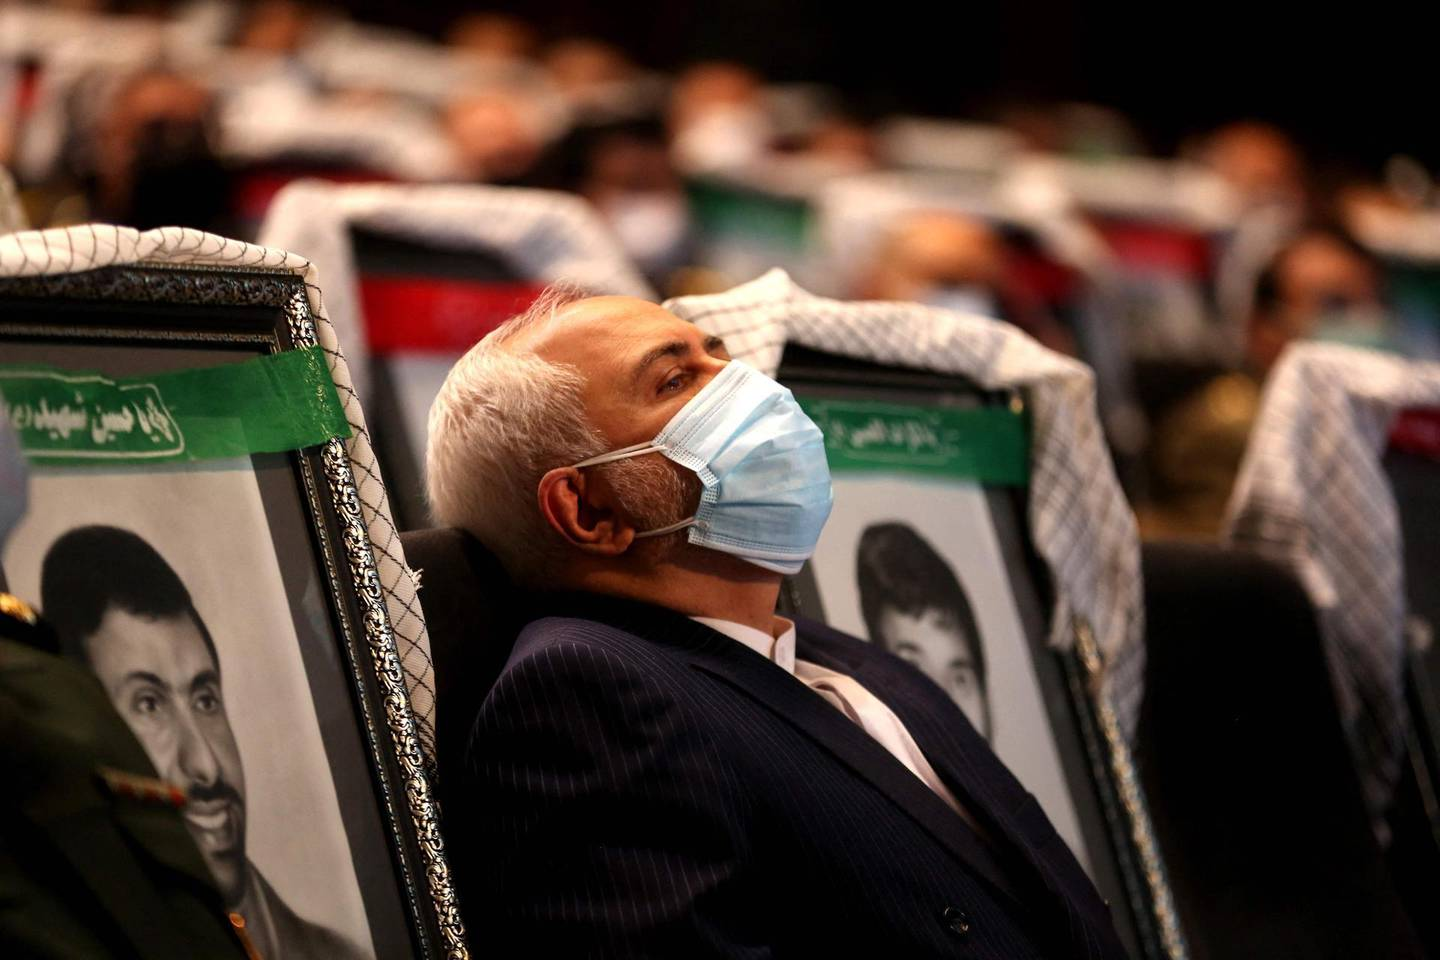 Iranian Foreign Minister Mohammad Javad Zarif listens to a speach during the the International Conference on the Legal-International Claims of the Holy Defense in the capital Tehran on February 23, 2021.  / AFP / ATTA KENARE